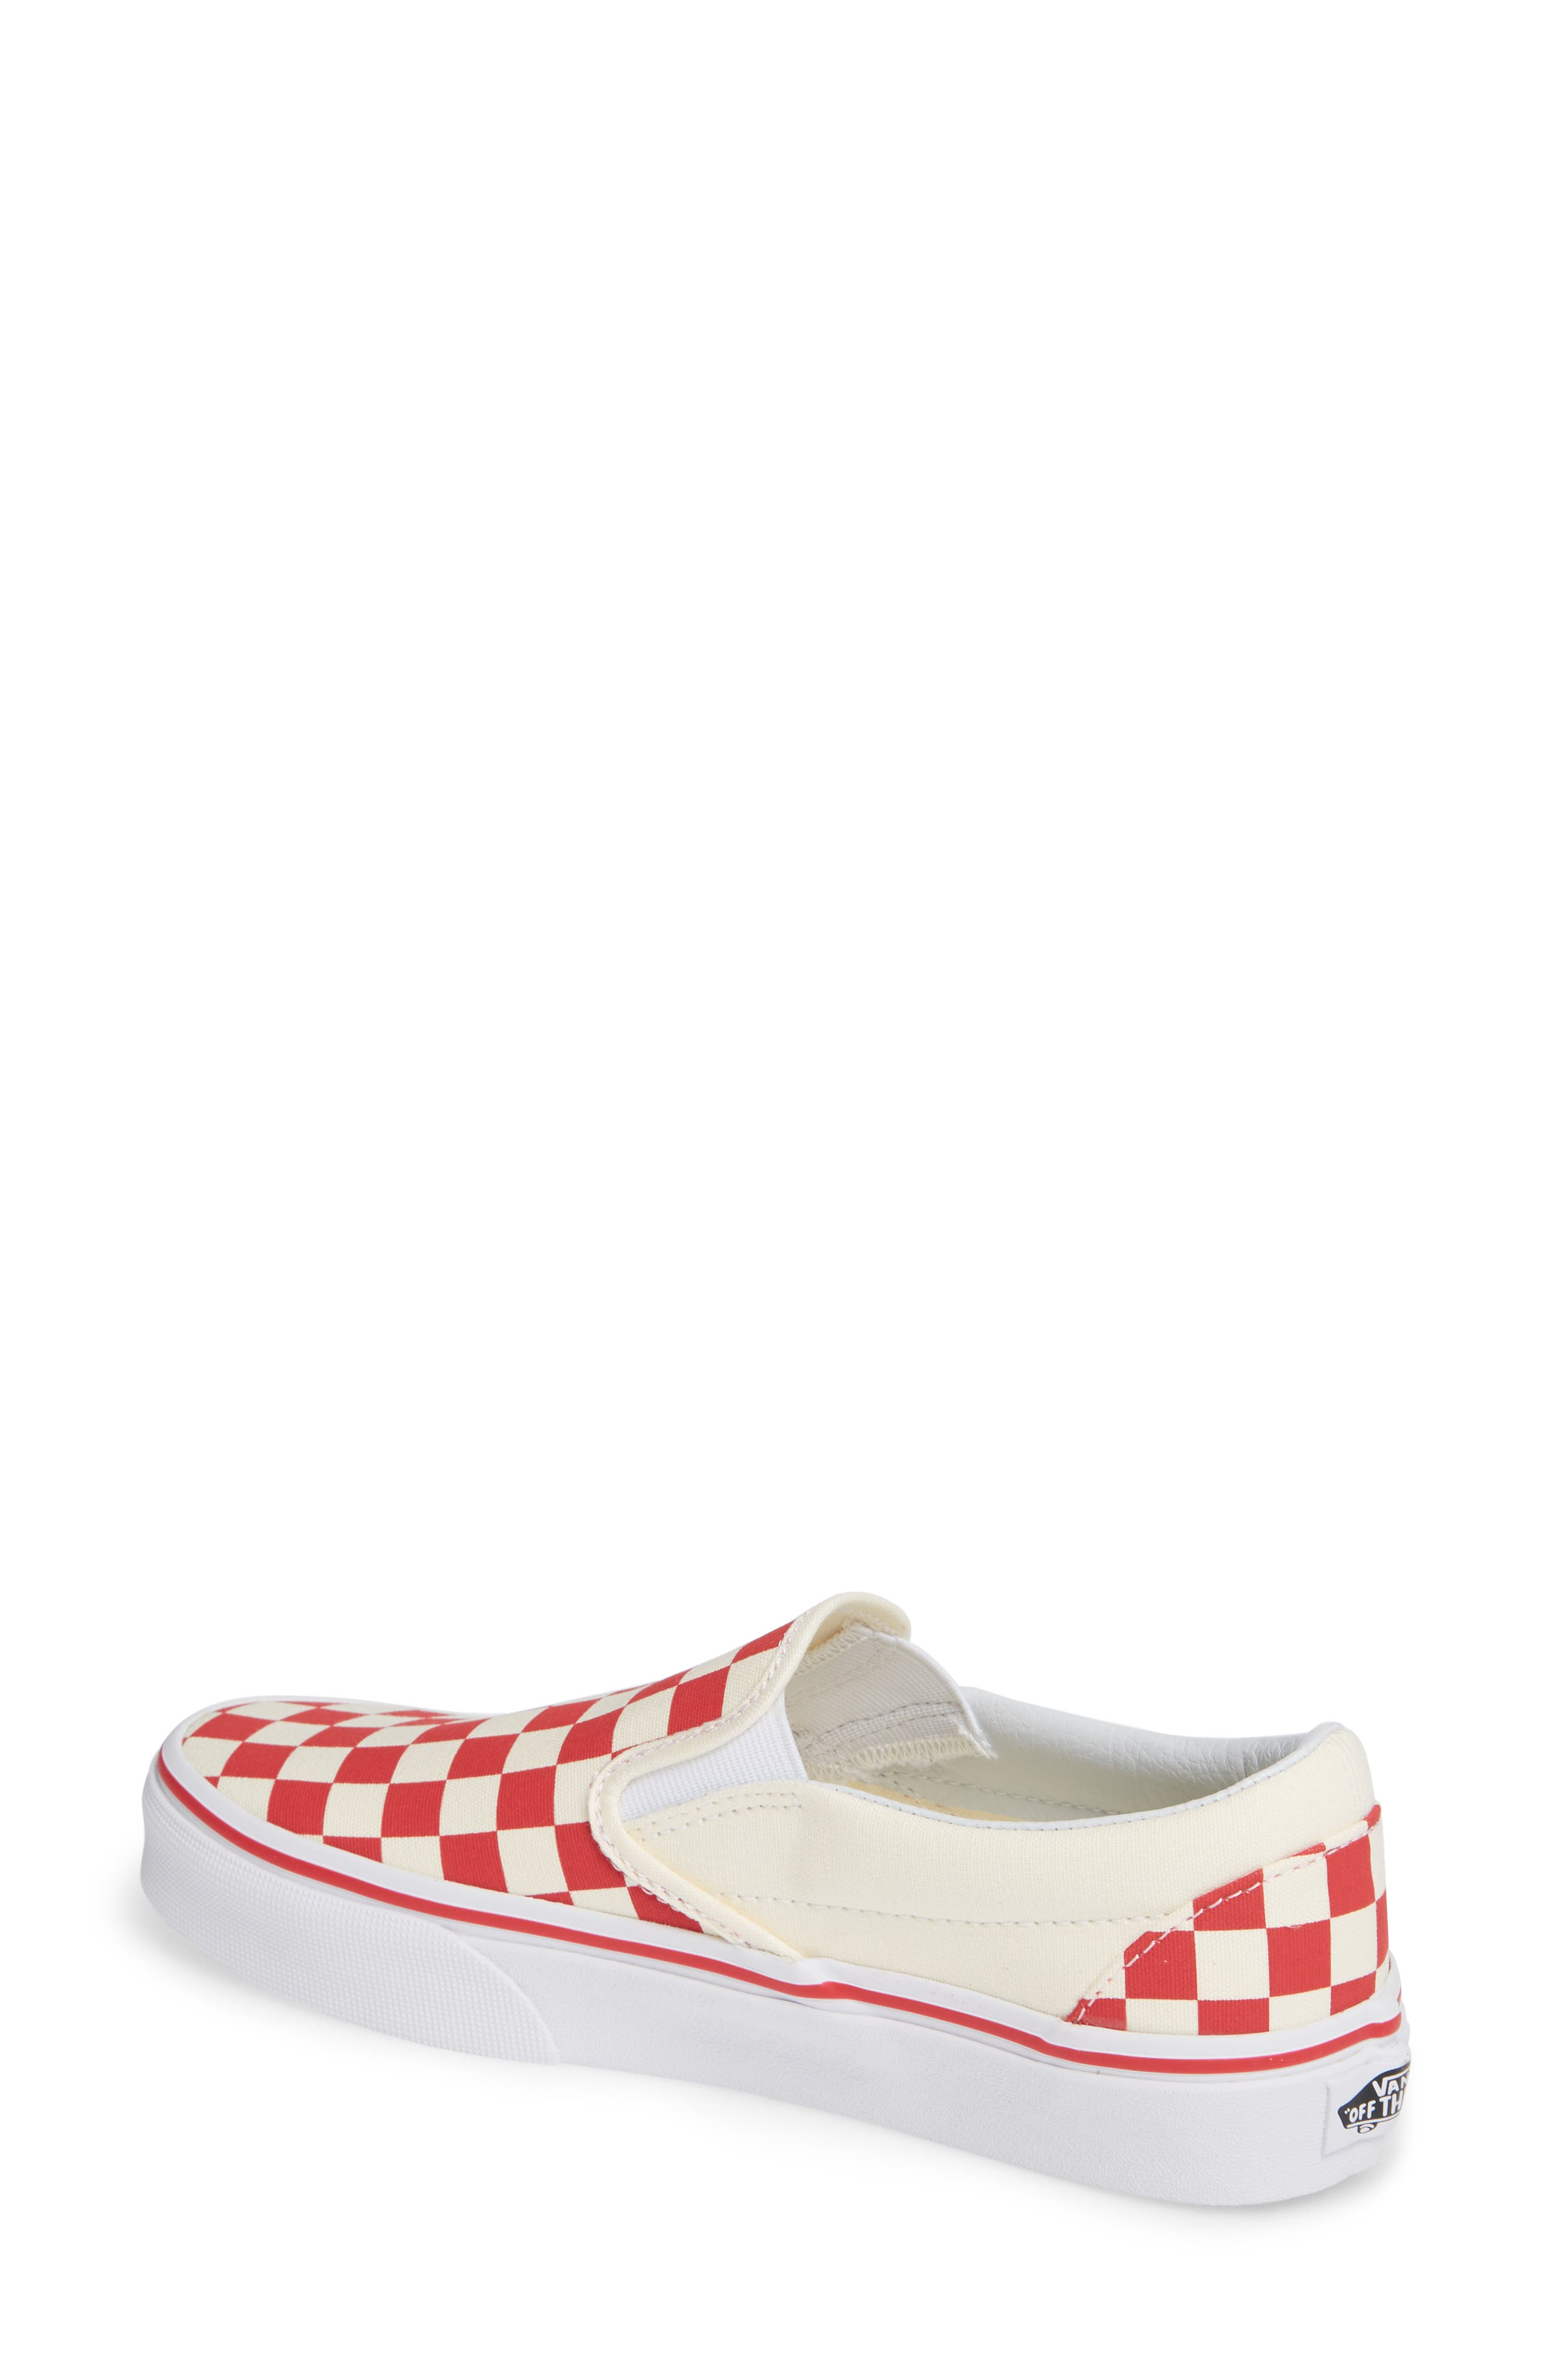 'Classic' Slip-On,                             Alternate thumbnail 2, color,                             Racing Red/ White